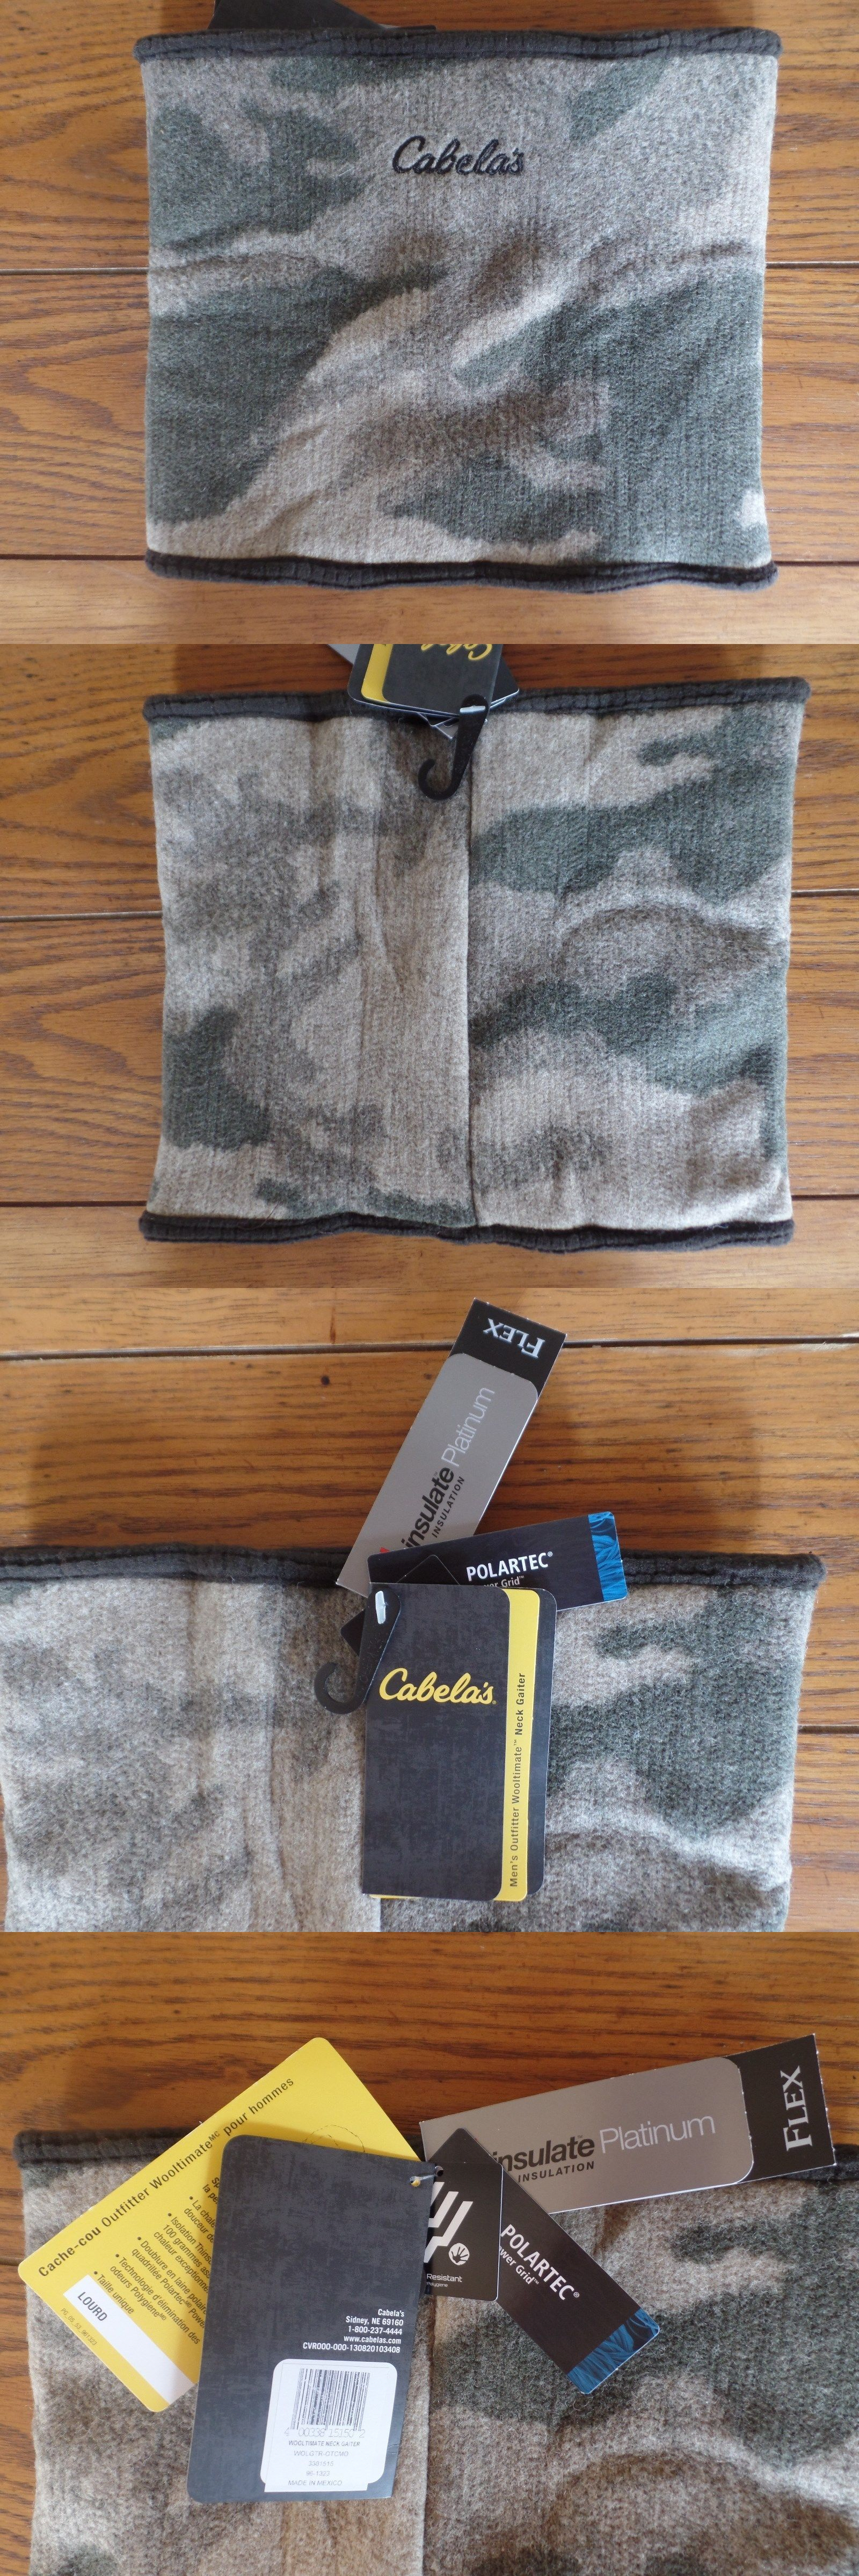 8ddc2459211 Clothing shoes and accessories cabela wooltimate neck gaiter buy it now  only on ebay clothing shoes